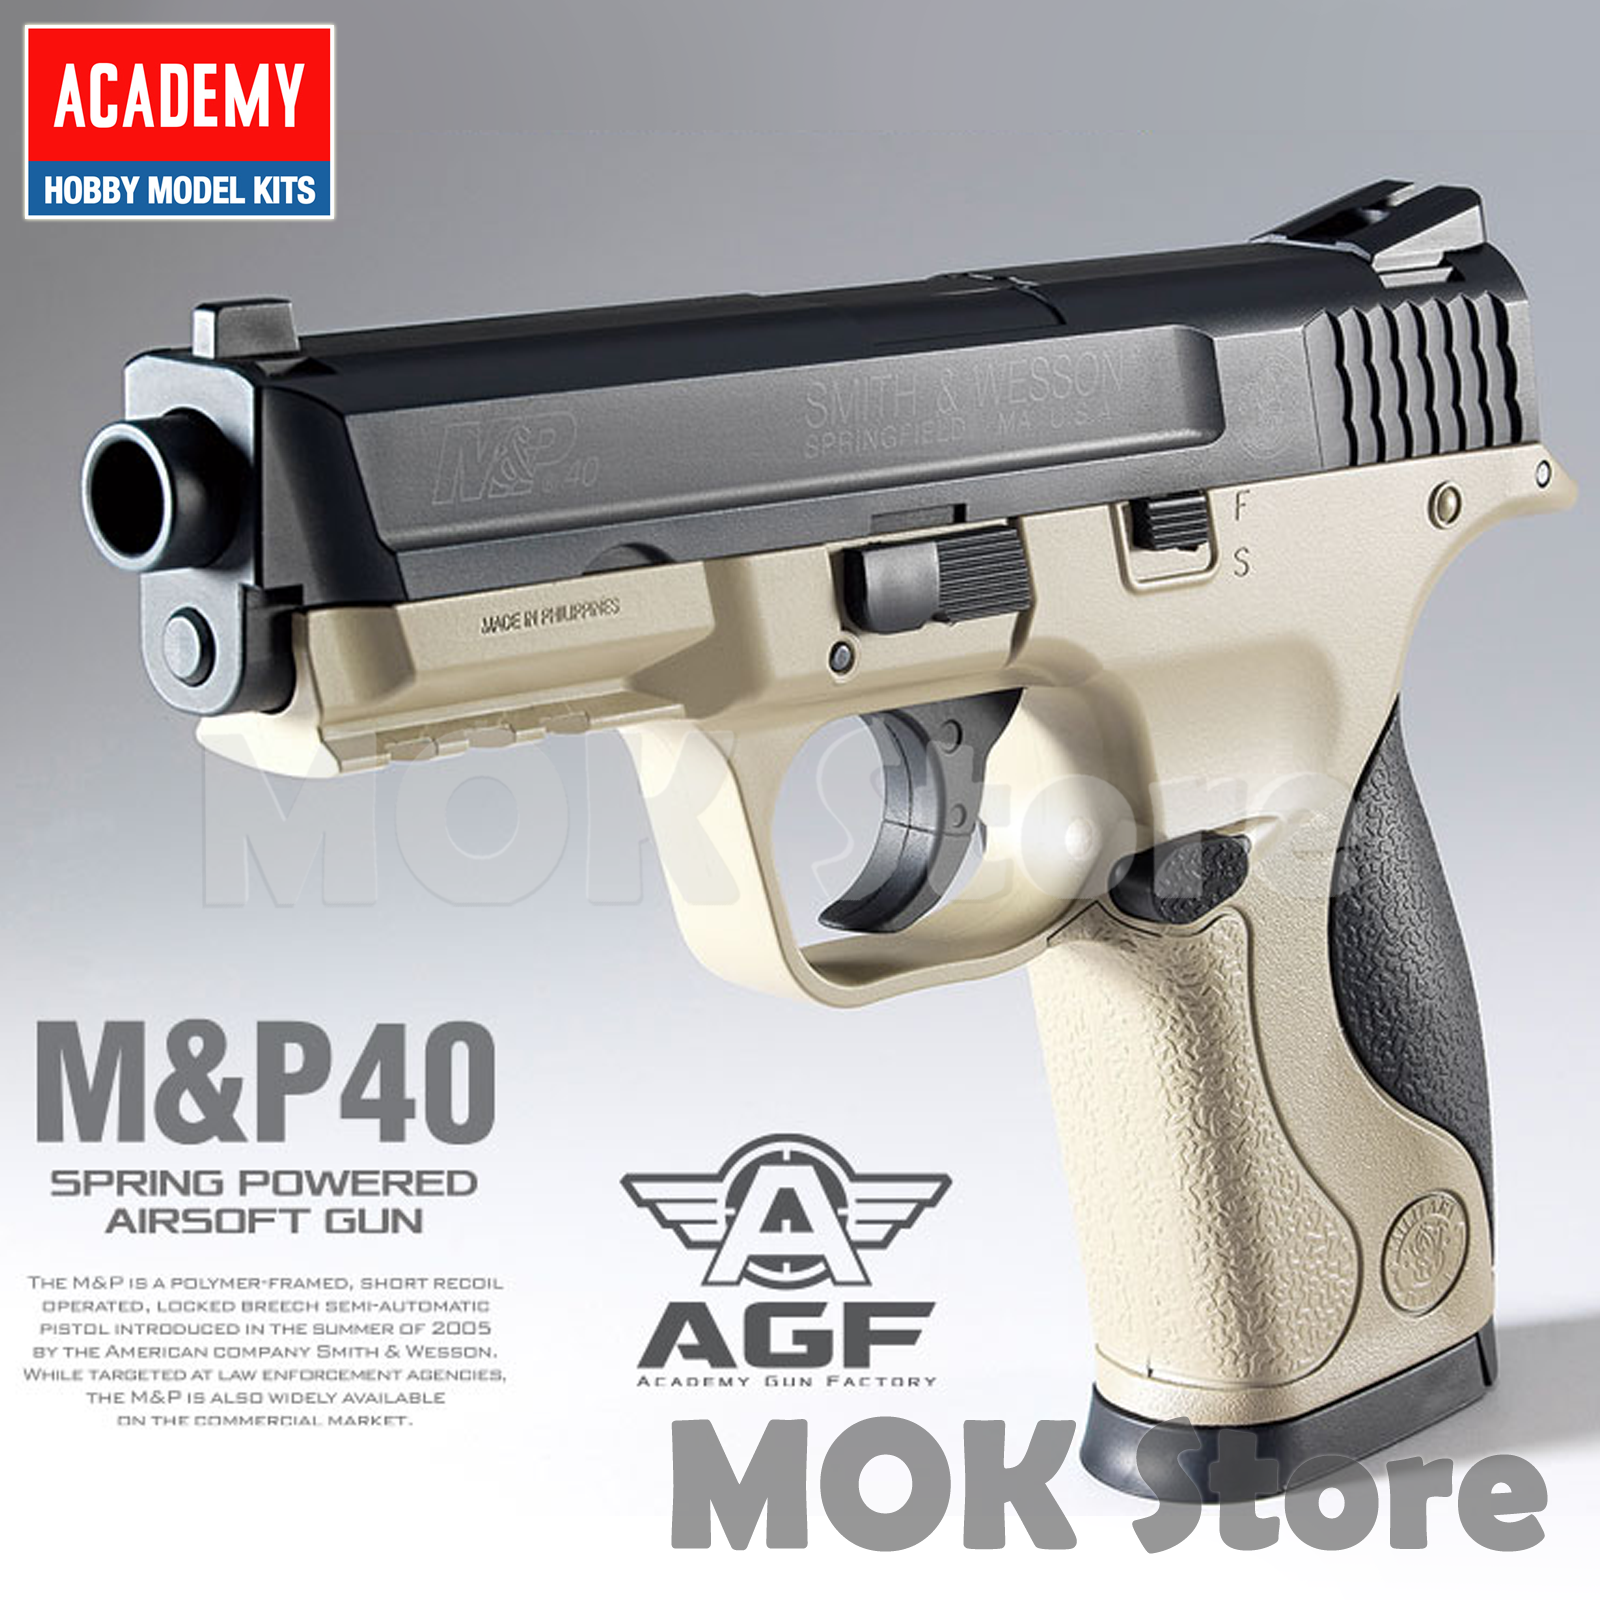 Details about ACADEMY M&P 40 TAN 17225T Airsoft BB Toy Gun Replica Full  Size Non Metal Pistol